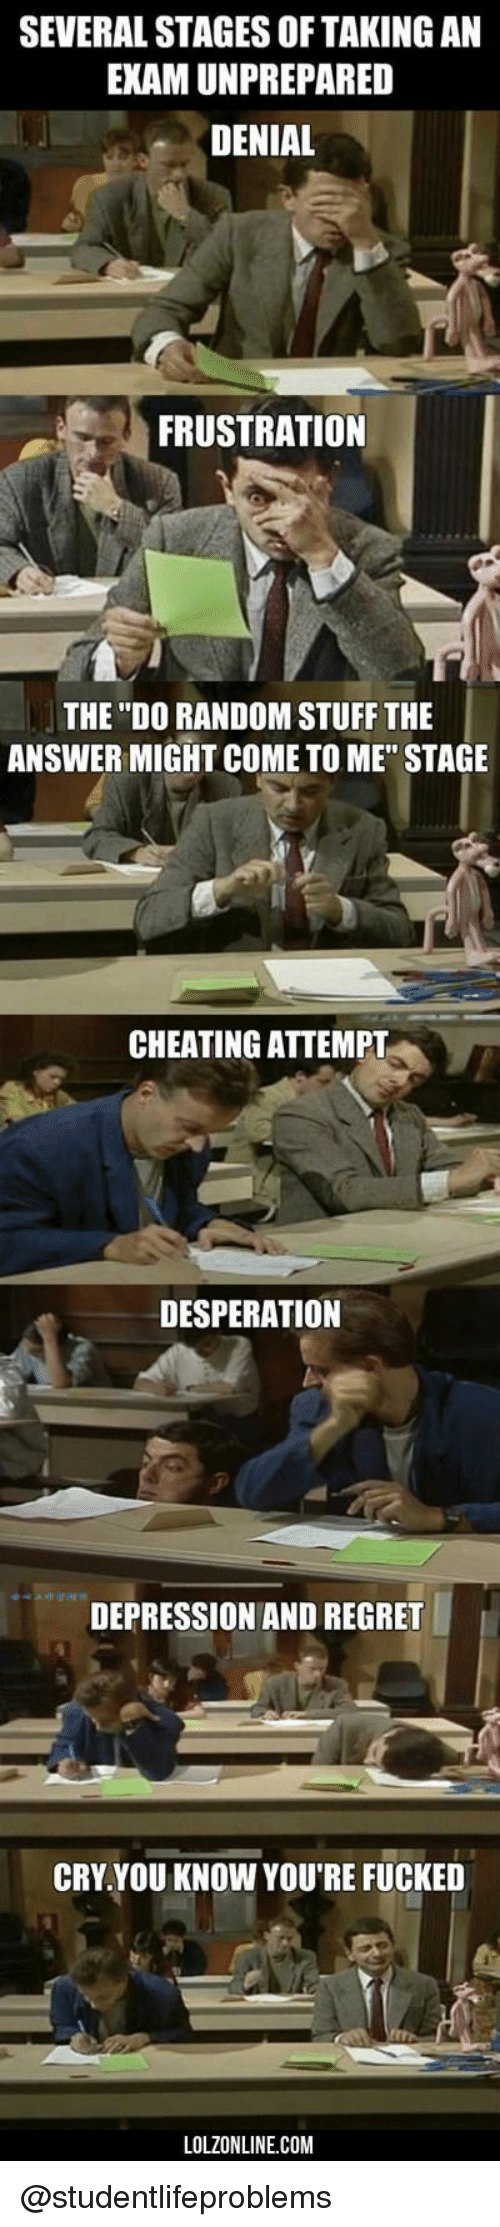 "Desperation: SEVERAL STAGES OF TAKING AN  EXAM UNPREPARED  DENIAL  FRUSTRATION  THE ""DO RANDOM STUFF THE  ANSWER MIGHT COME TO ME"" STAGE  CHEATING ATTEMPT  DESPERATION  DEPRESSION AND REGRET  CRY.YOU KNOW YOU'RE FUCKED  LOLZONLINE.COM @studentlifeproblems"